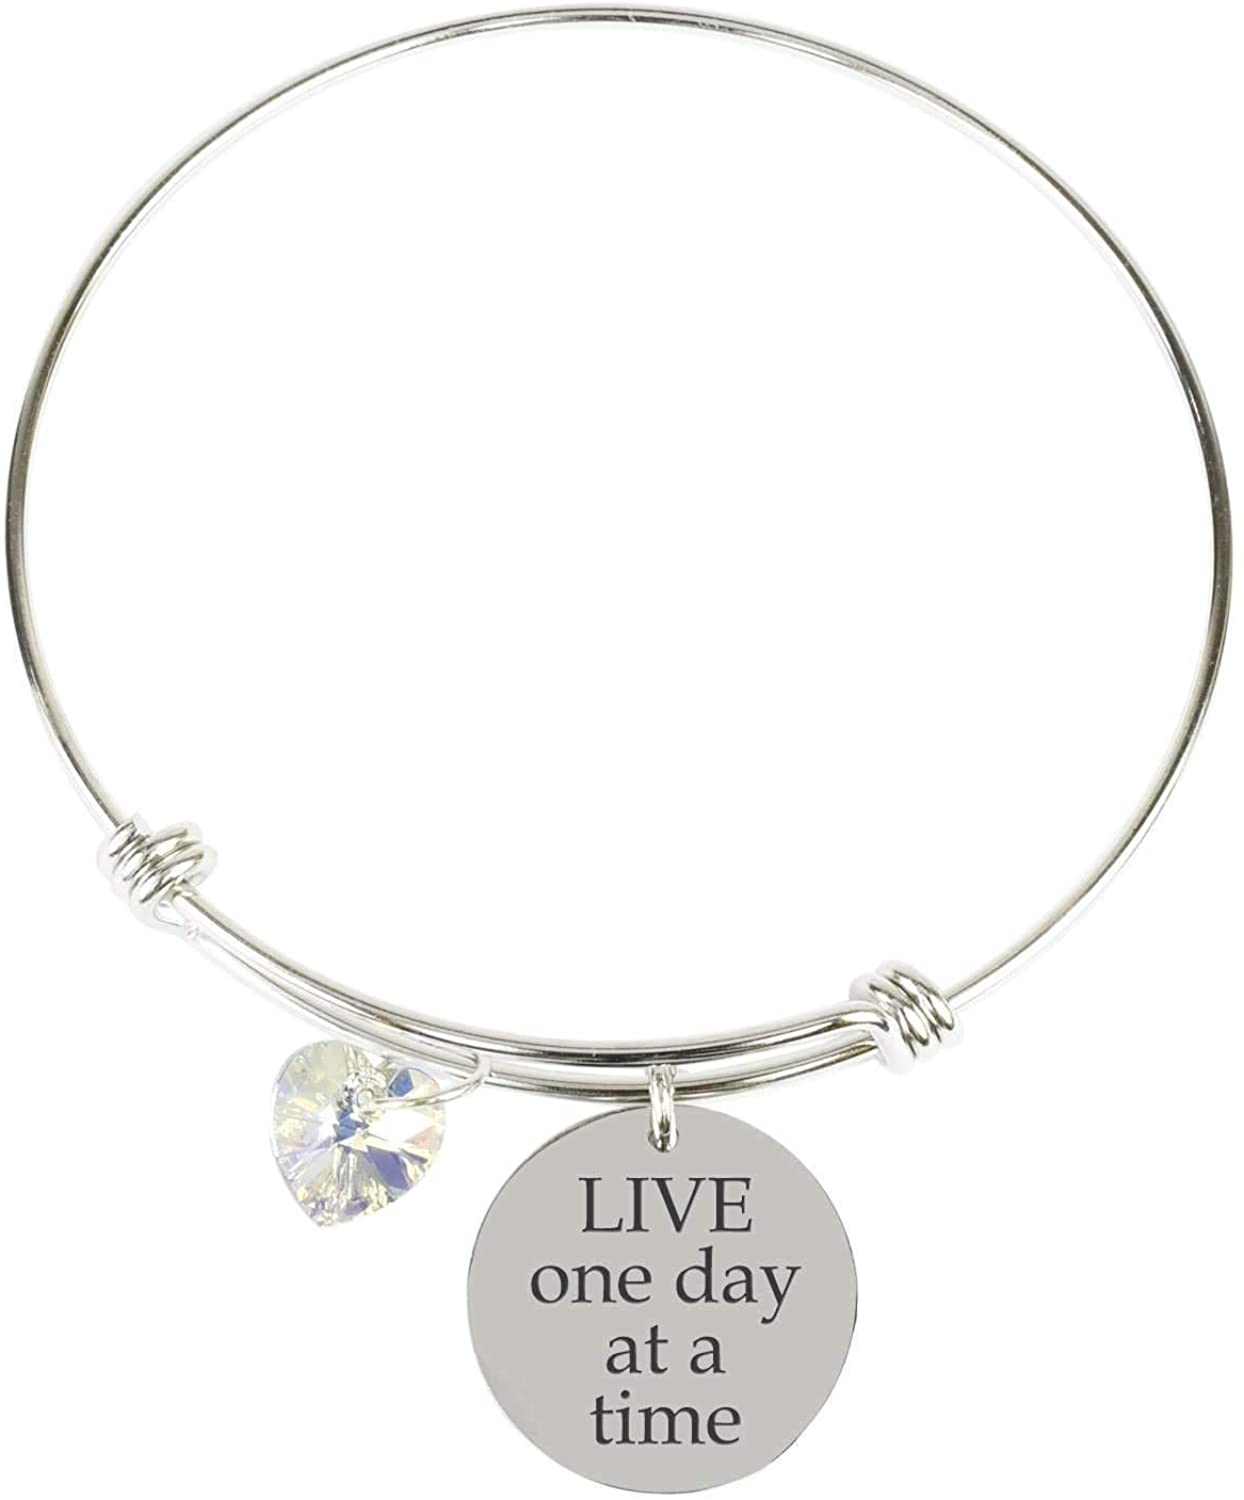 Pink Box Inspirational Expandable Wire Bangle Made with Swarovski - Silver - Live ONE Day at A TIME